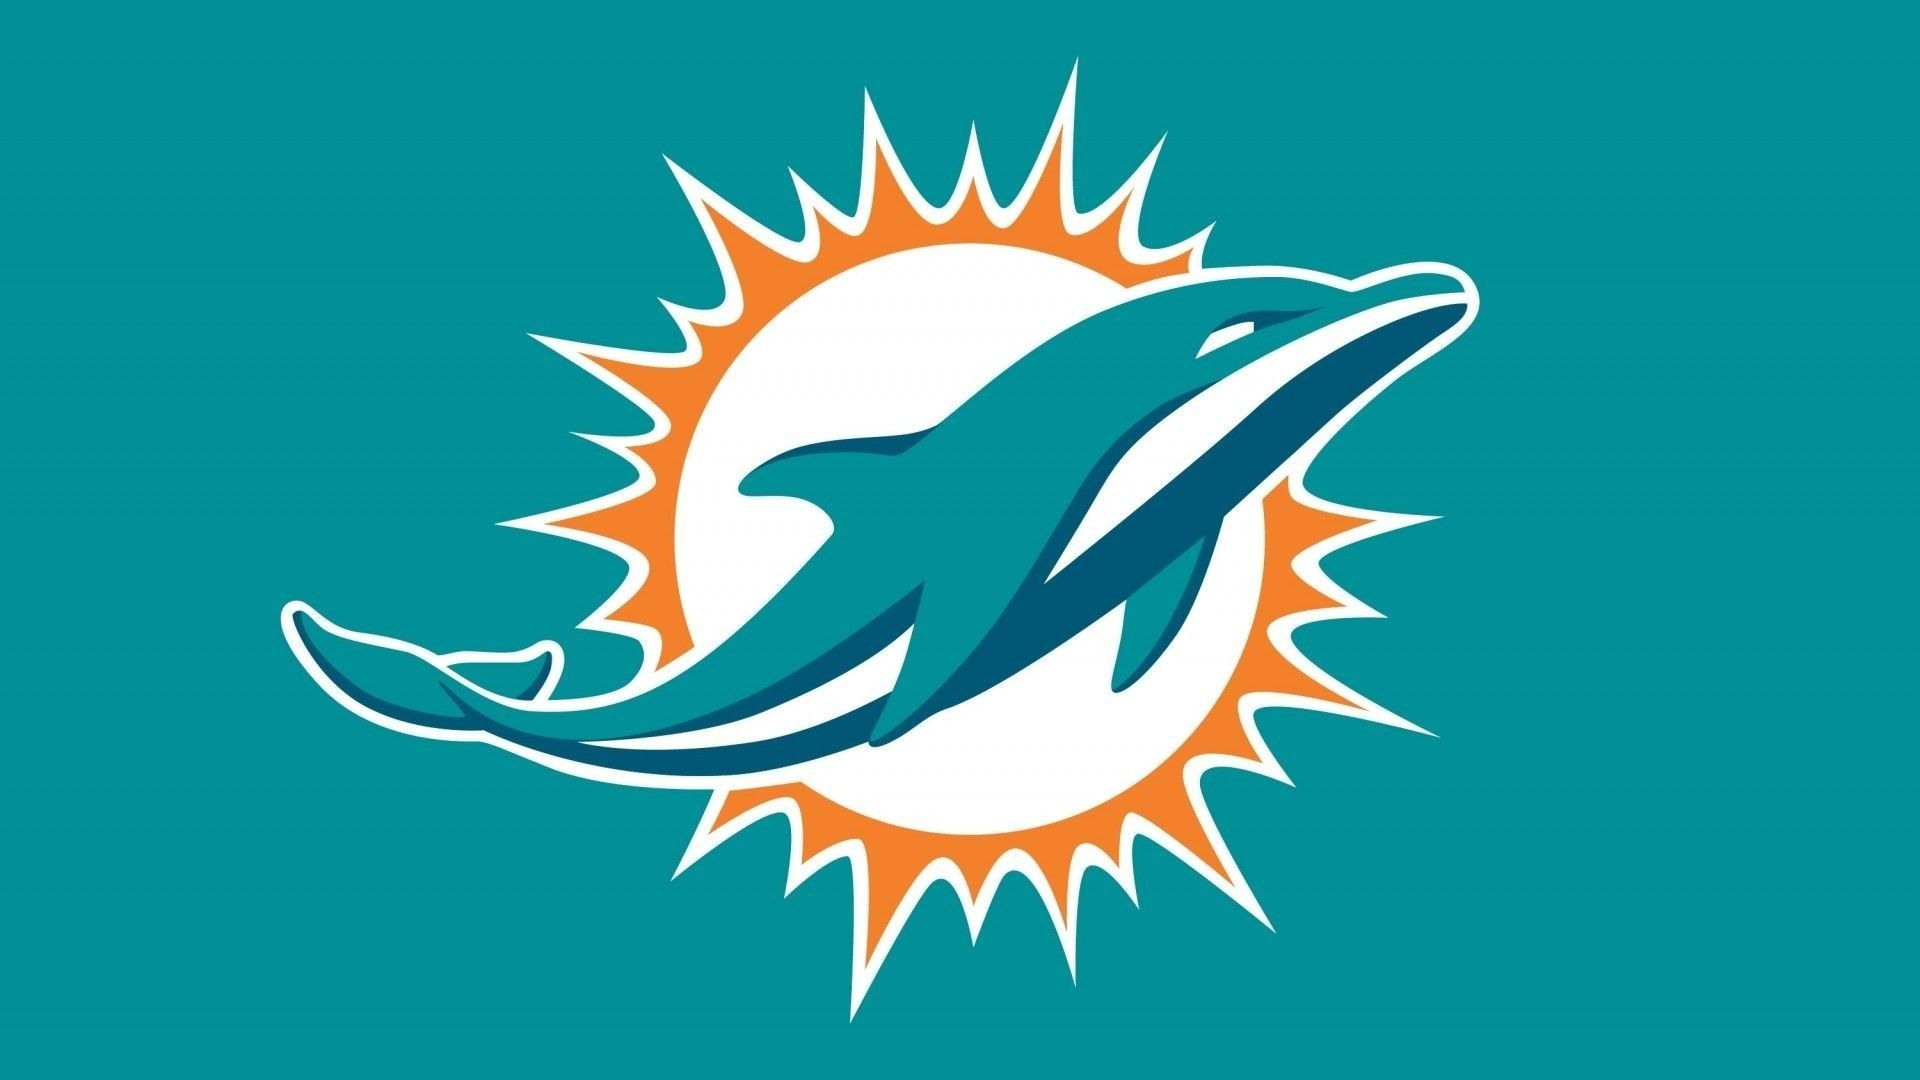 Miami Dolphins Wallpaper HD